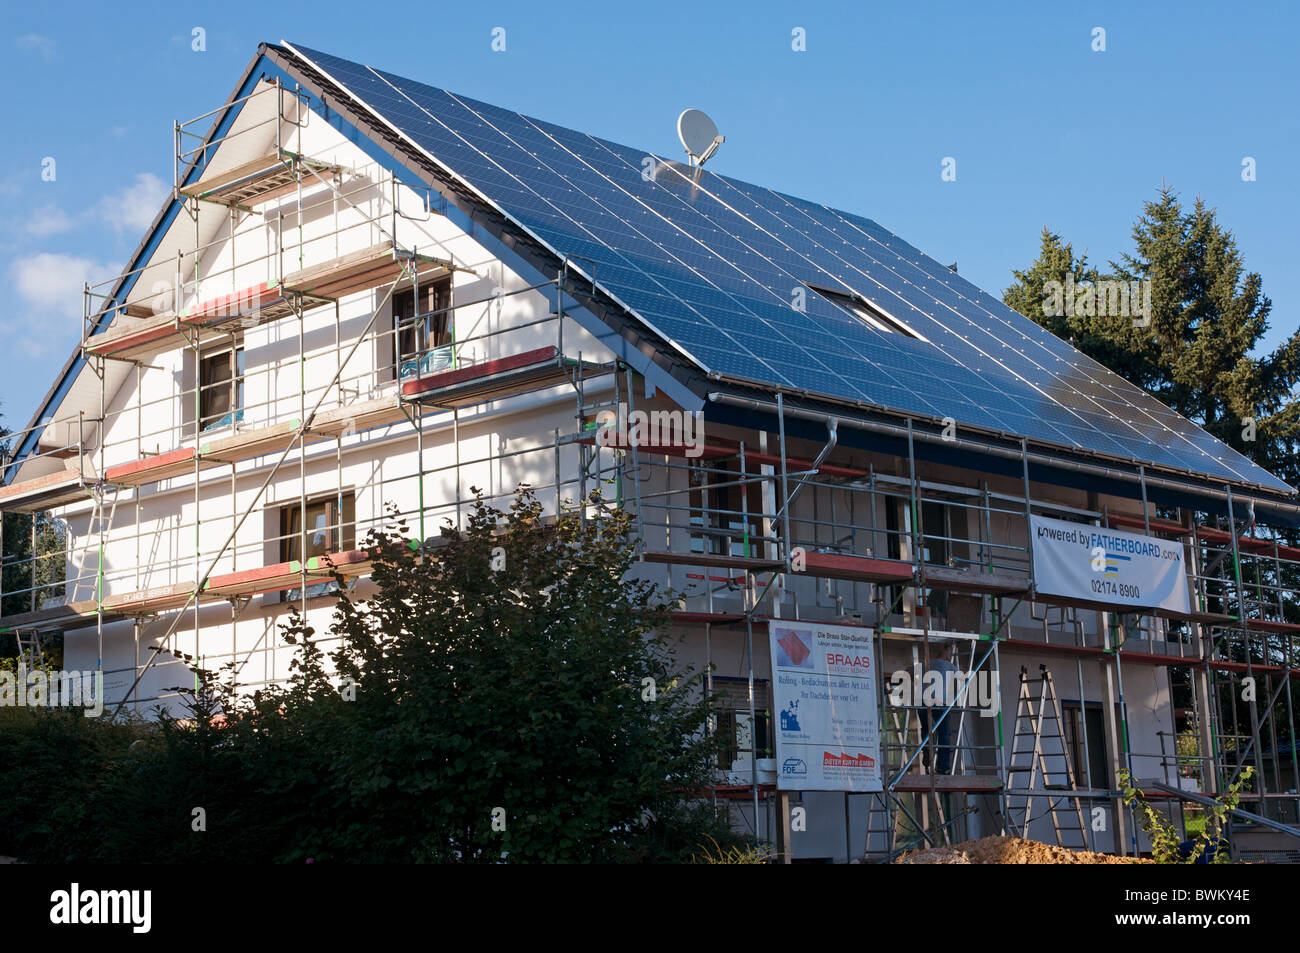 House under construction with solar energy panels covering the whole rooftop - Stock Image